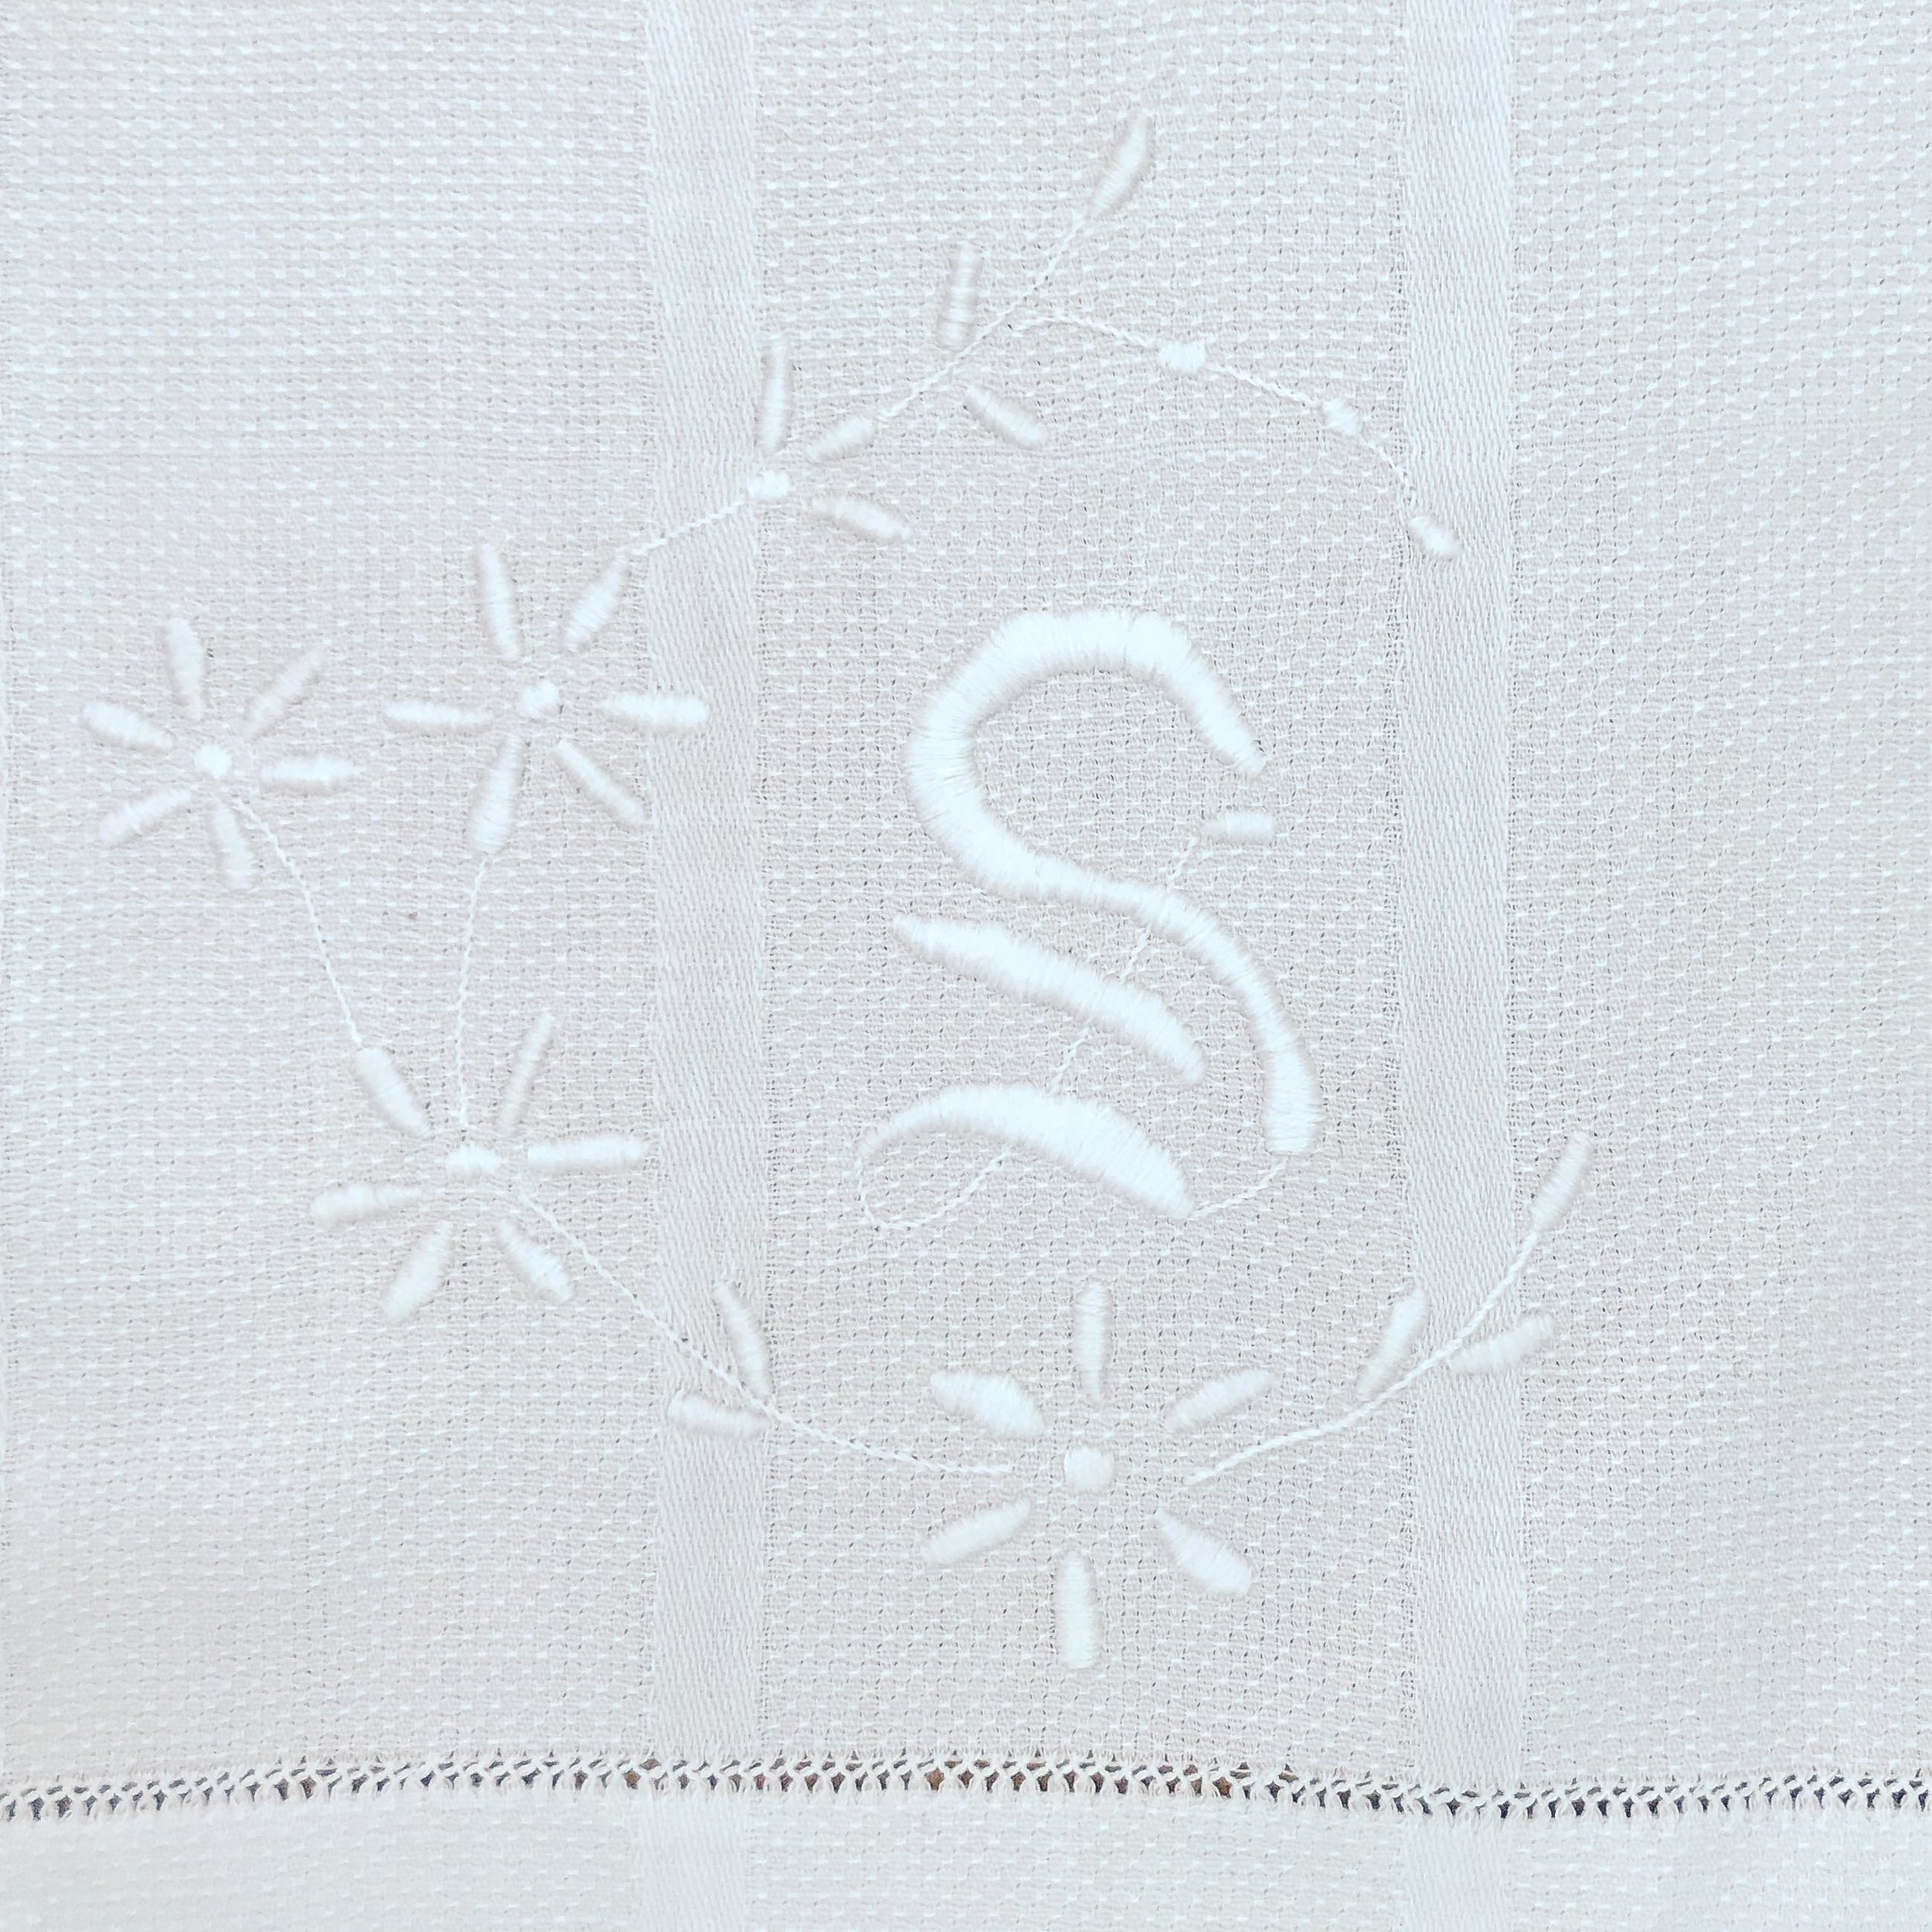 Hand-embroidered monogram on the towel-now-dresser scarf.